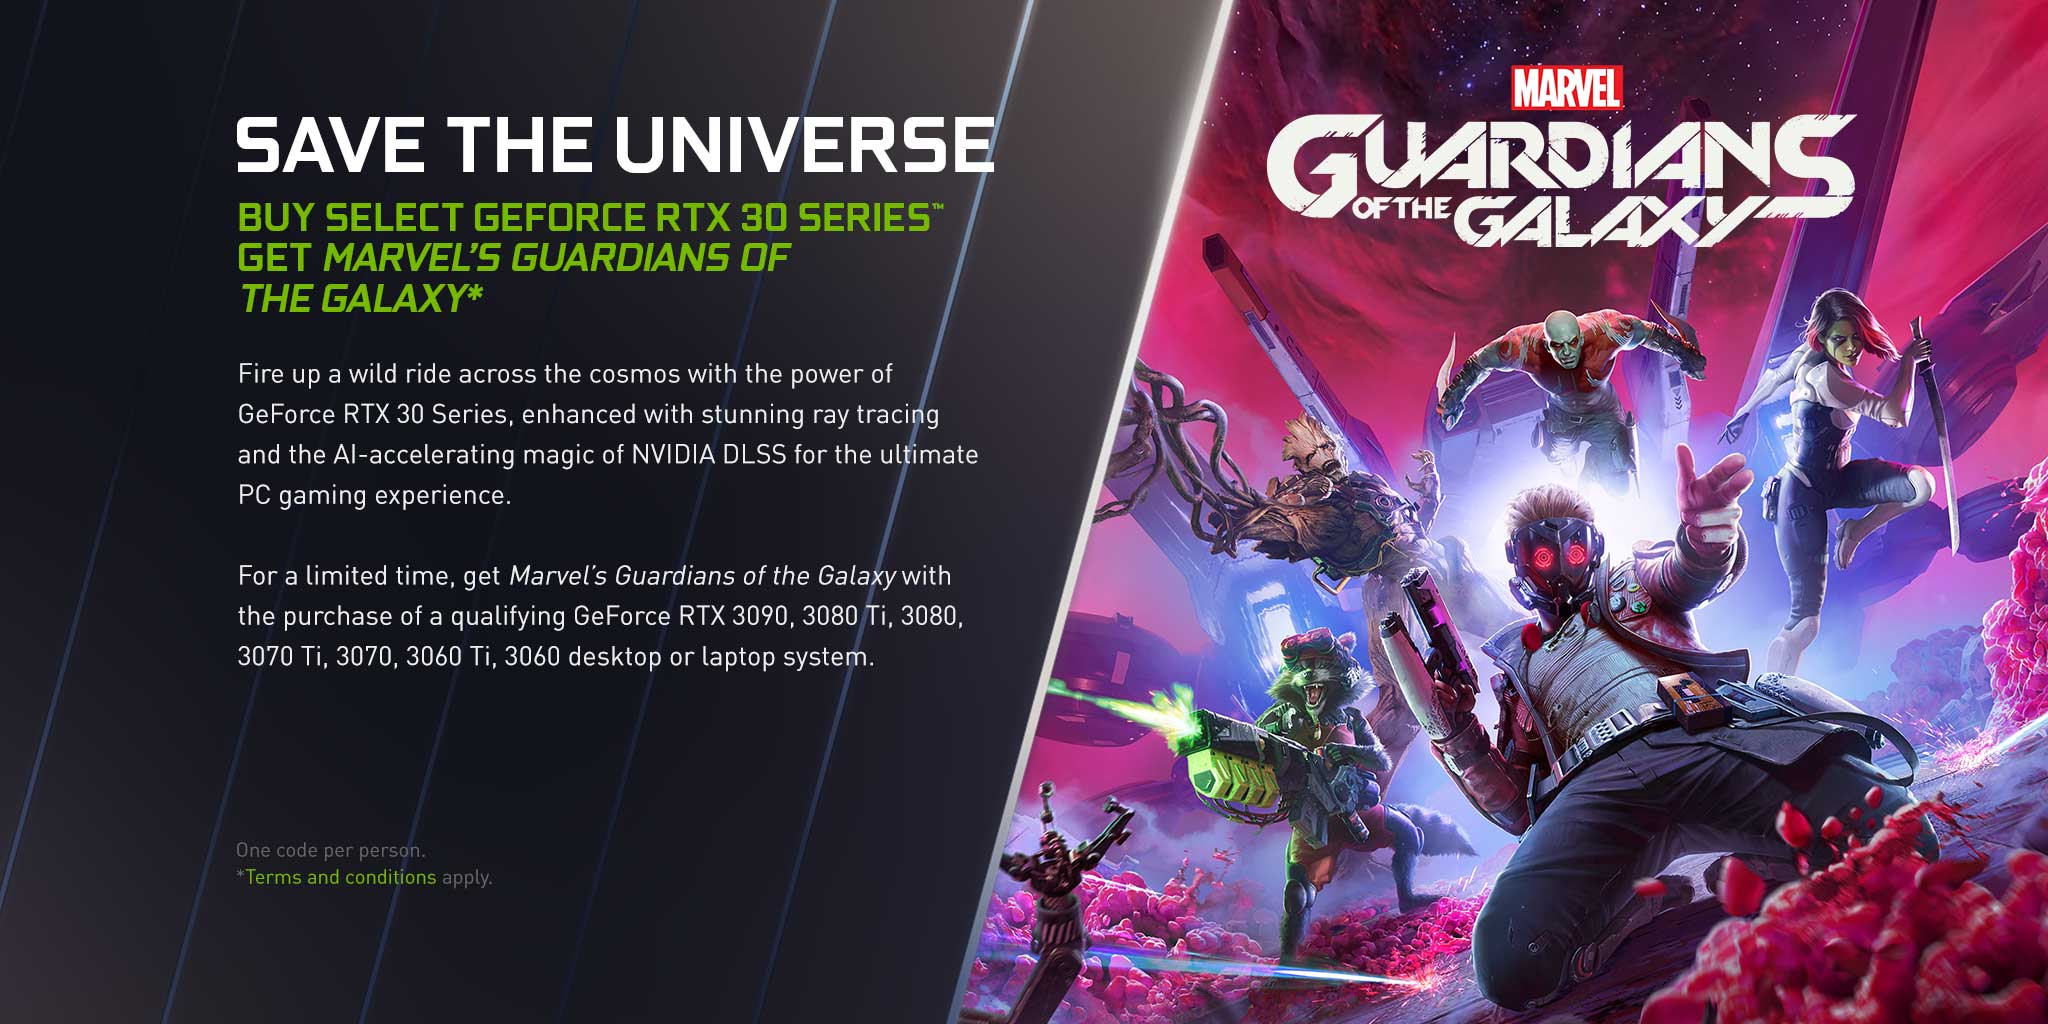 Guardians of the Galaxy promotion header image